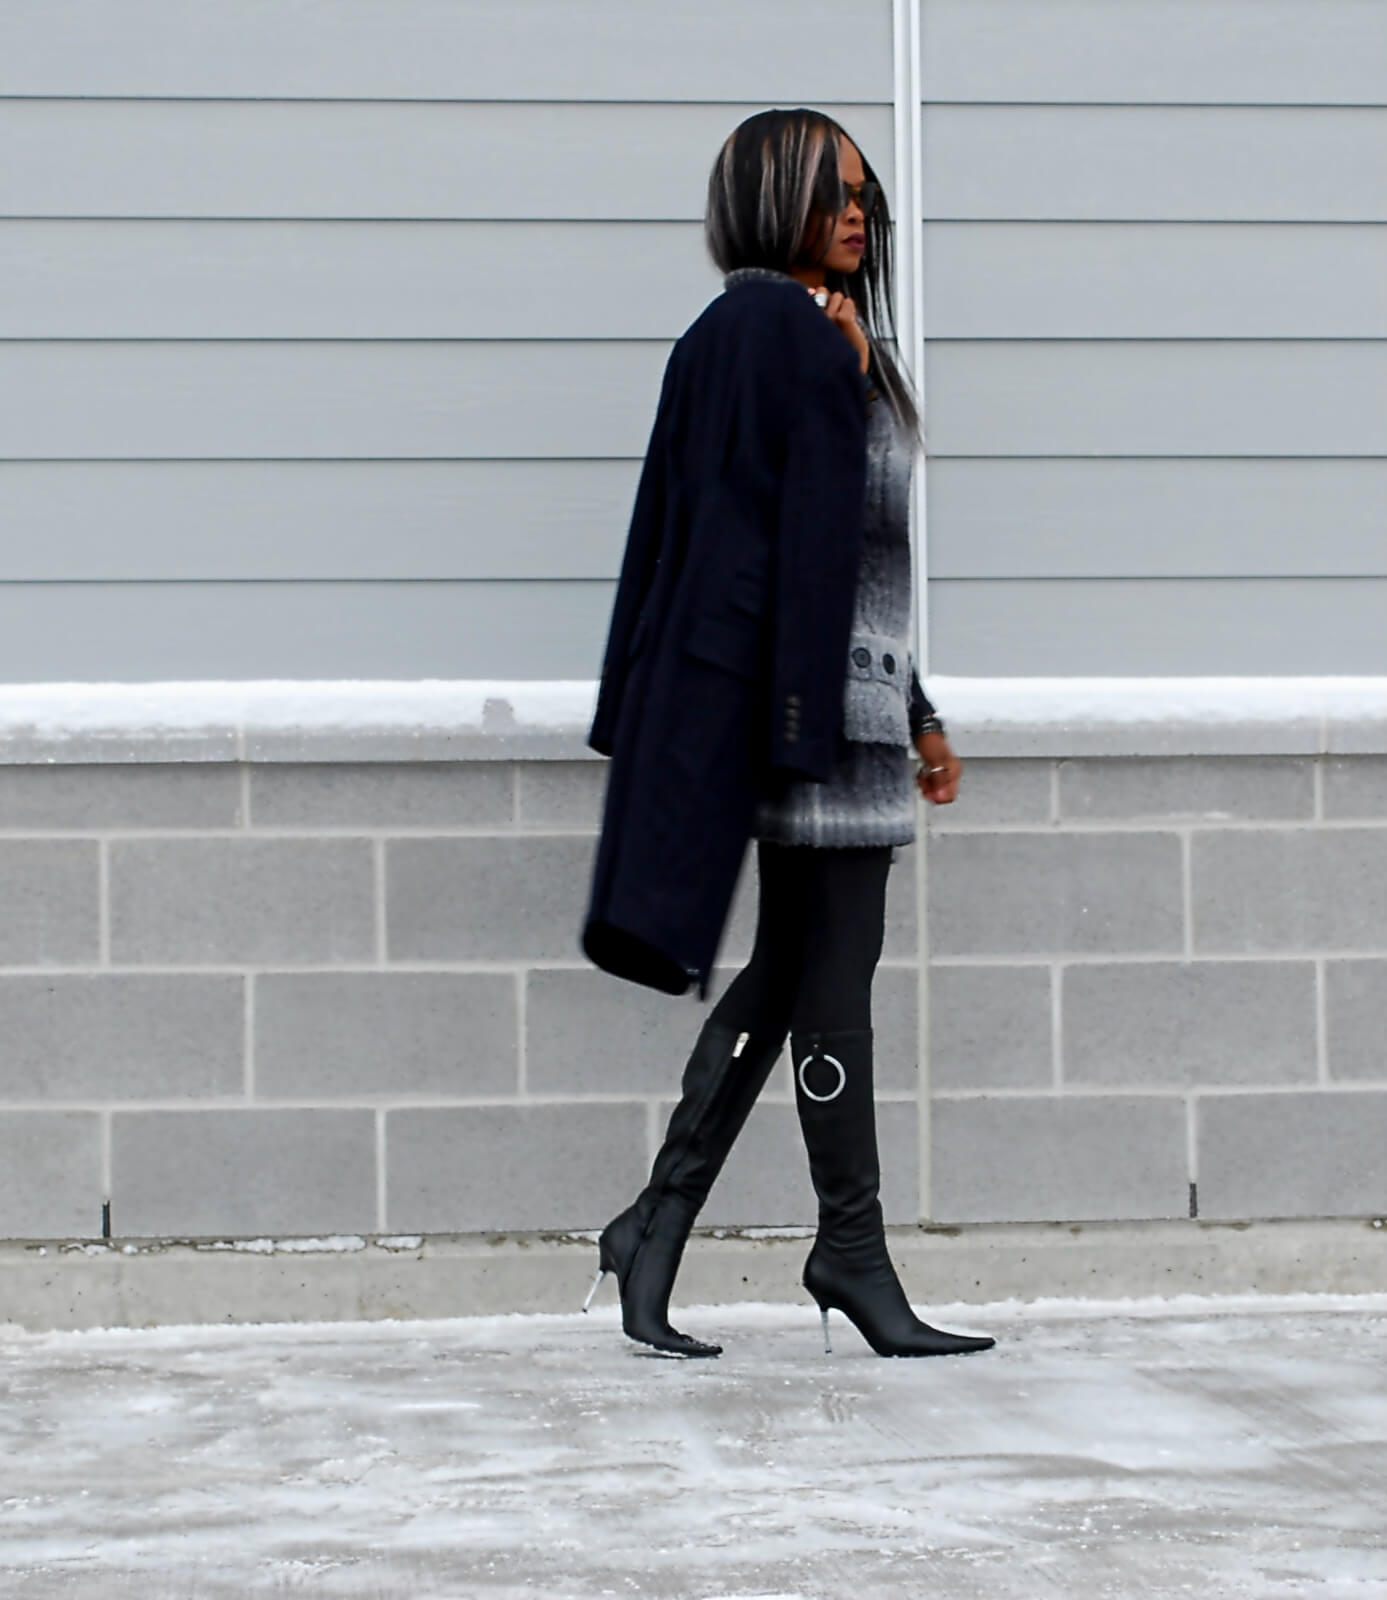 Hue tights, Duster coat, navy wool jacket, sweater dress, ombre sweater dress, Winnipeg fashion blogger, aldo leather boots, stiletto heel boots, chrome heel boots, style my dreams blog, winter trends 2015